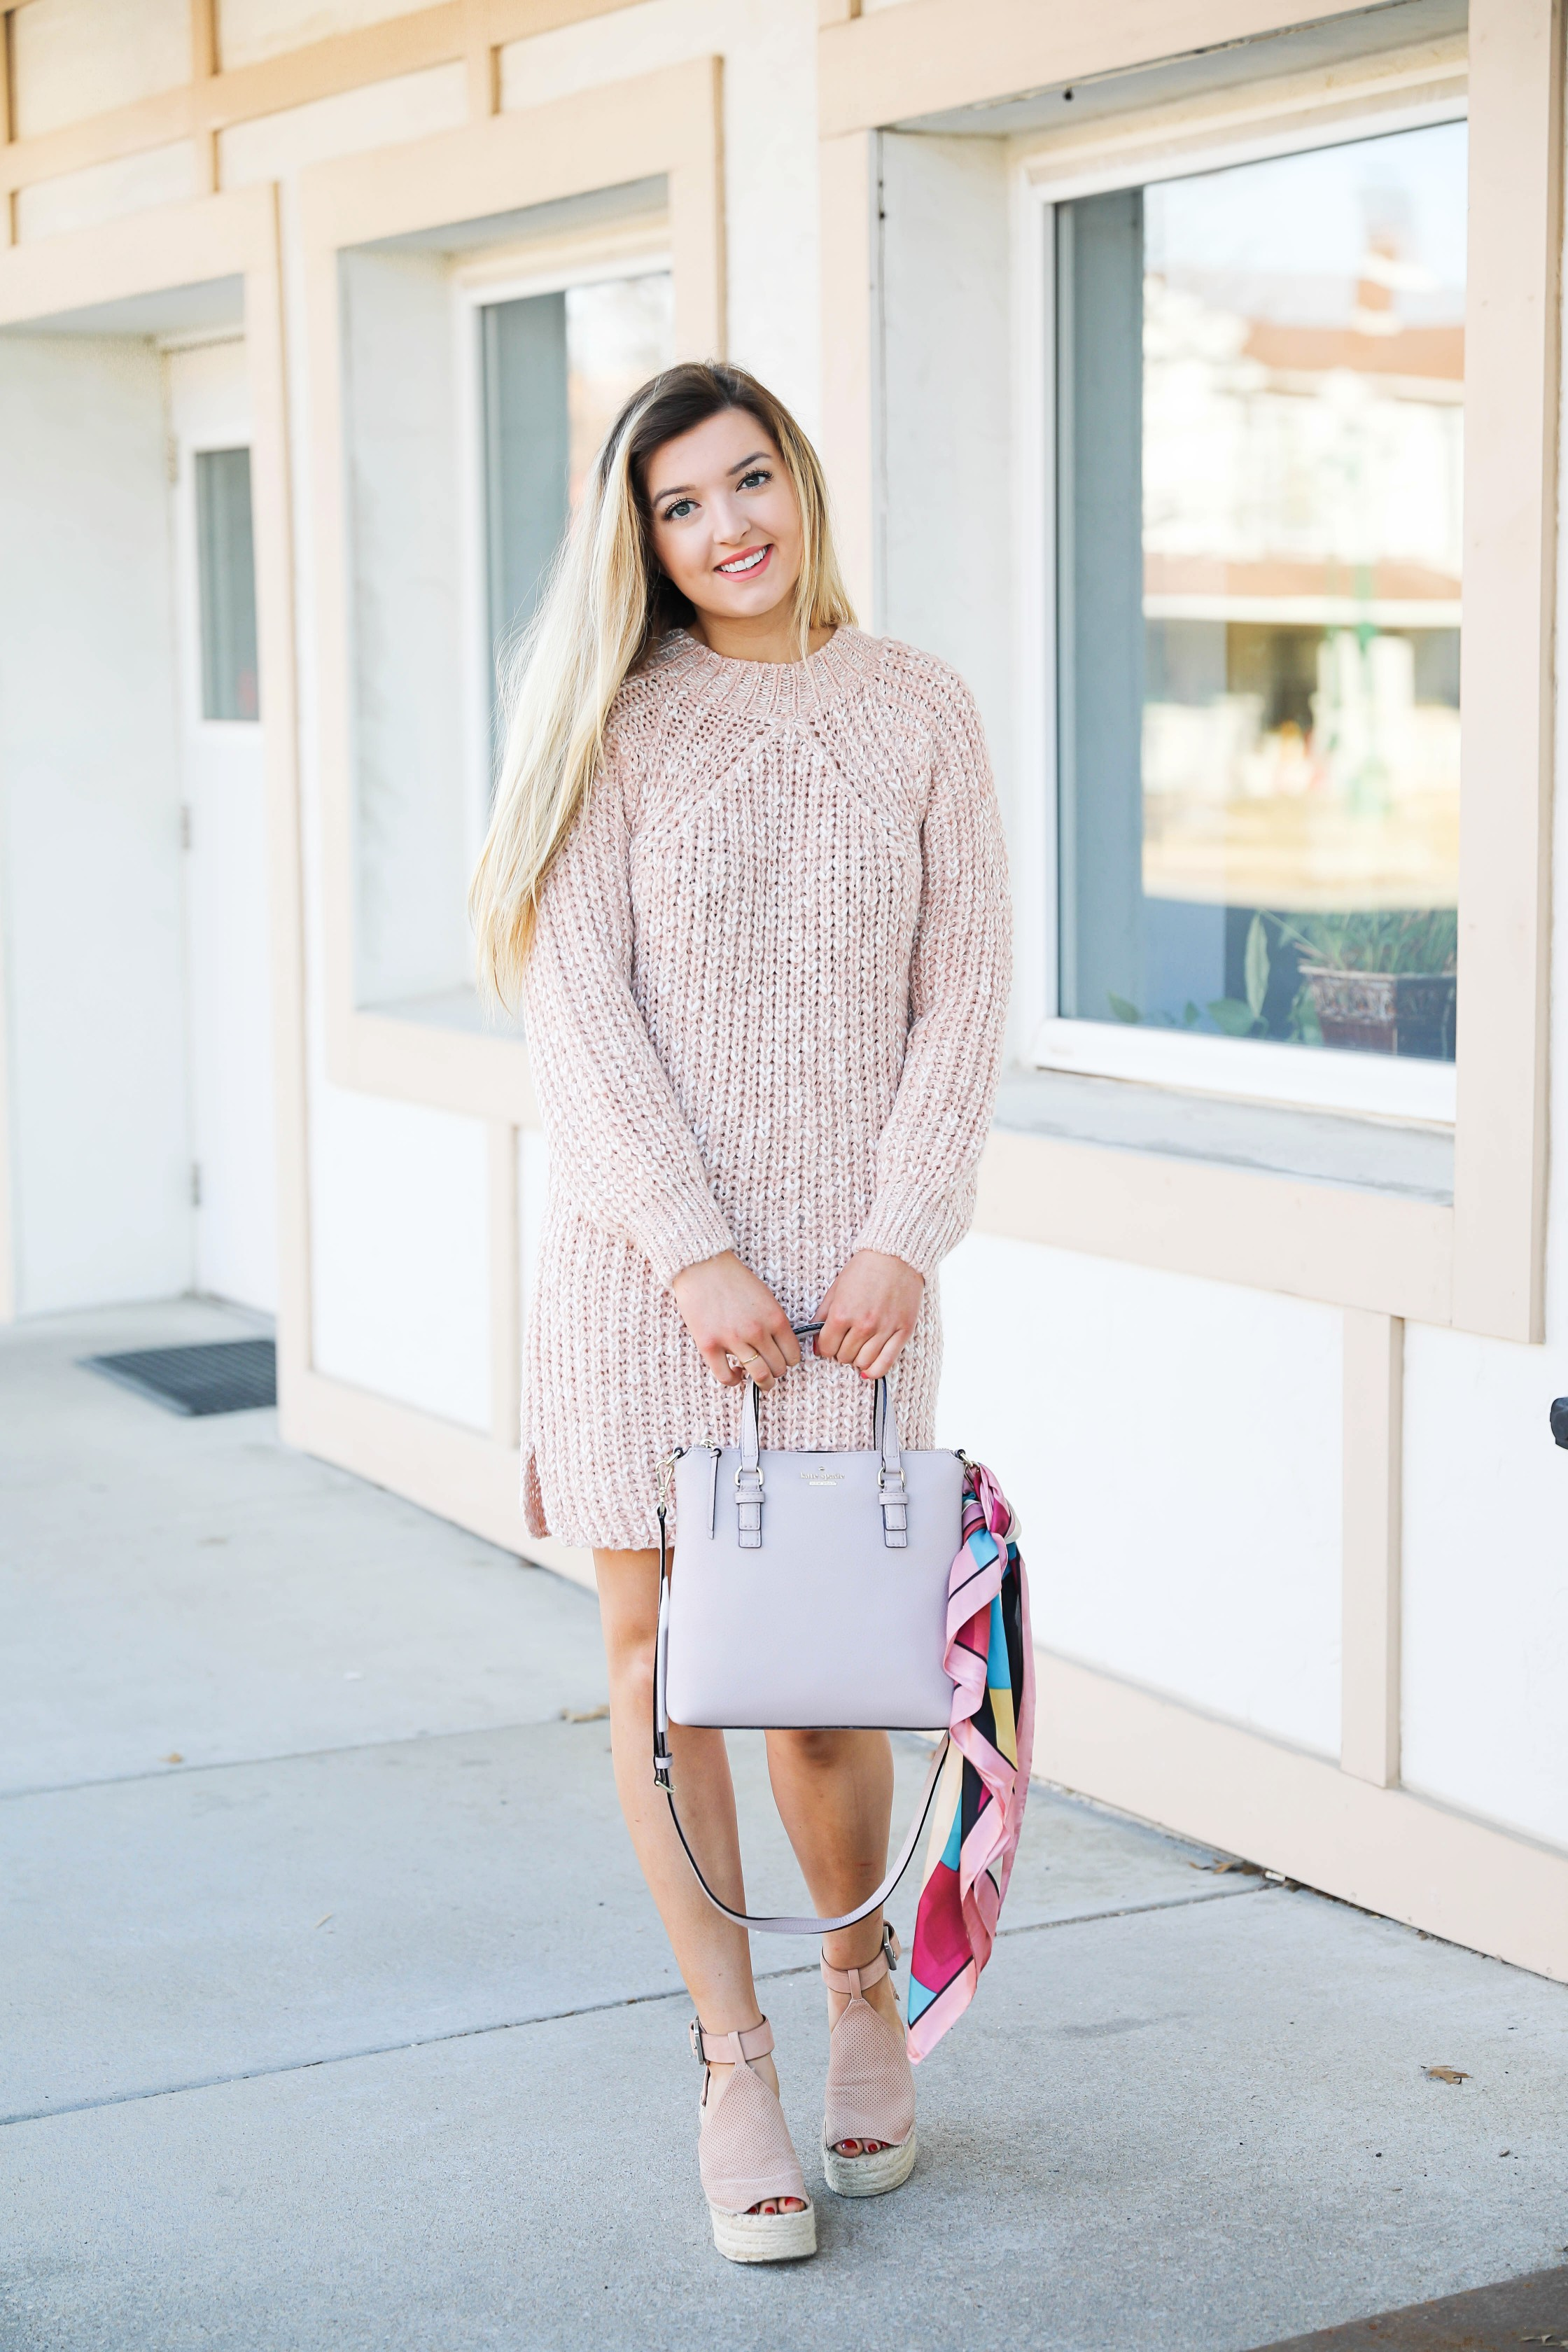 8678bc966bed0 ... Pink sweater dress with kate spade bag! I love this Kate Spade bag with  the ...